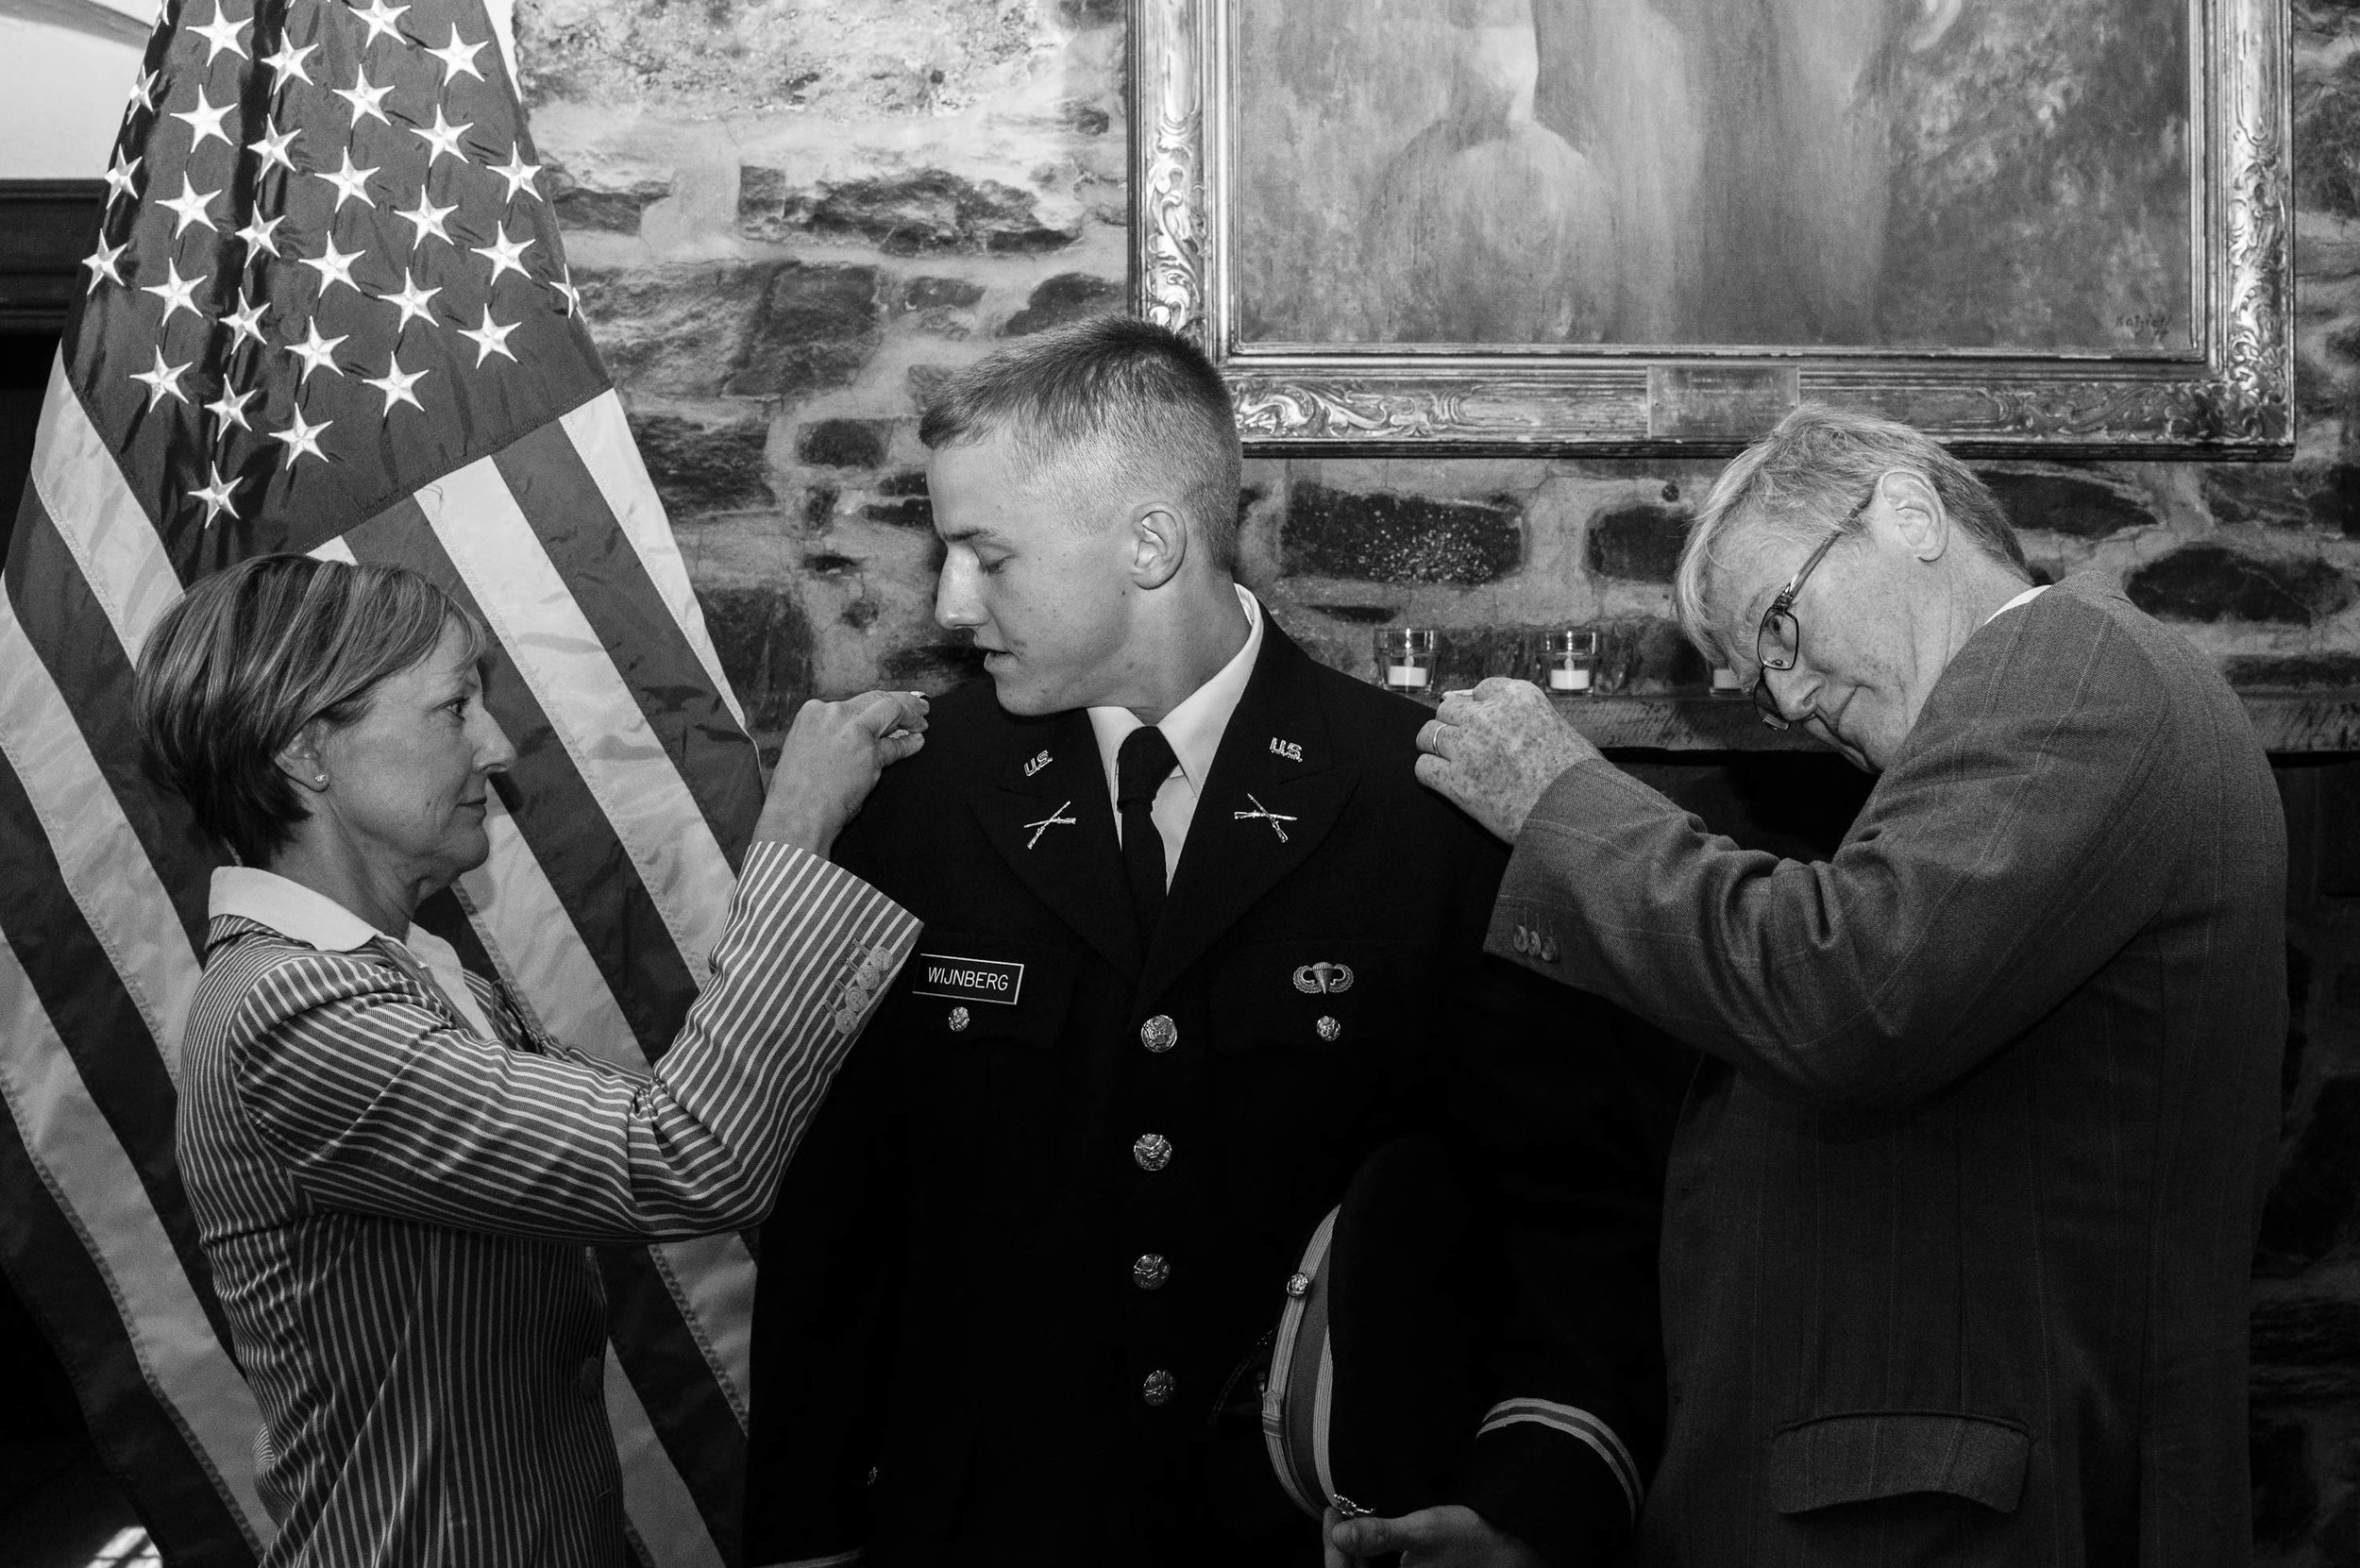 ROTC_Commisioning_Ceremony_DOC_House_Jacob_B_Wi (4).jpg